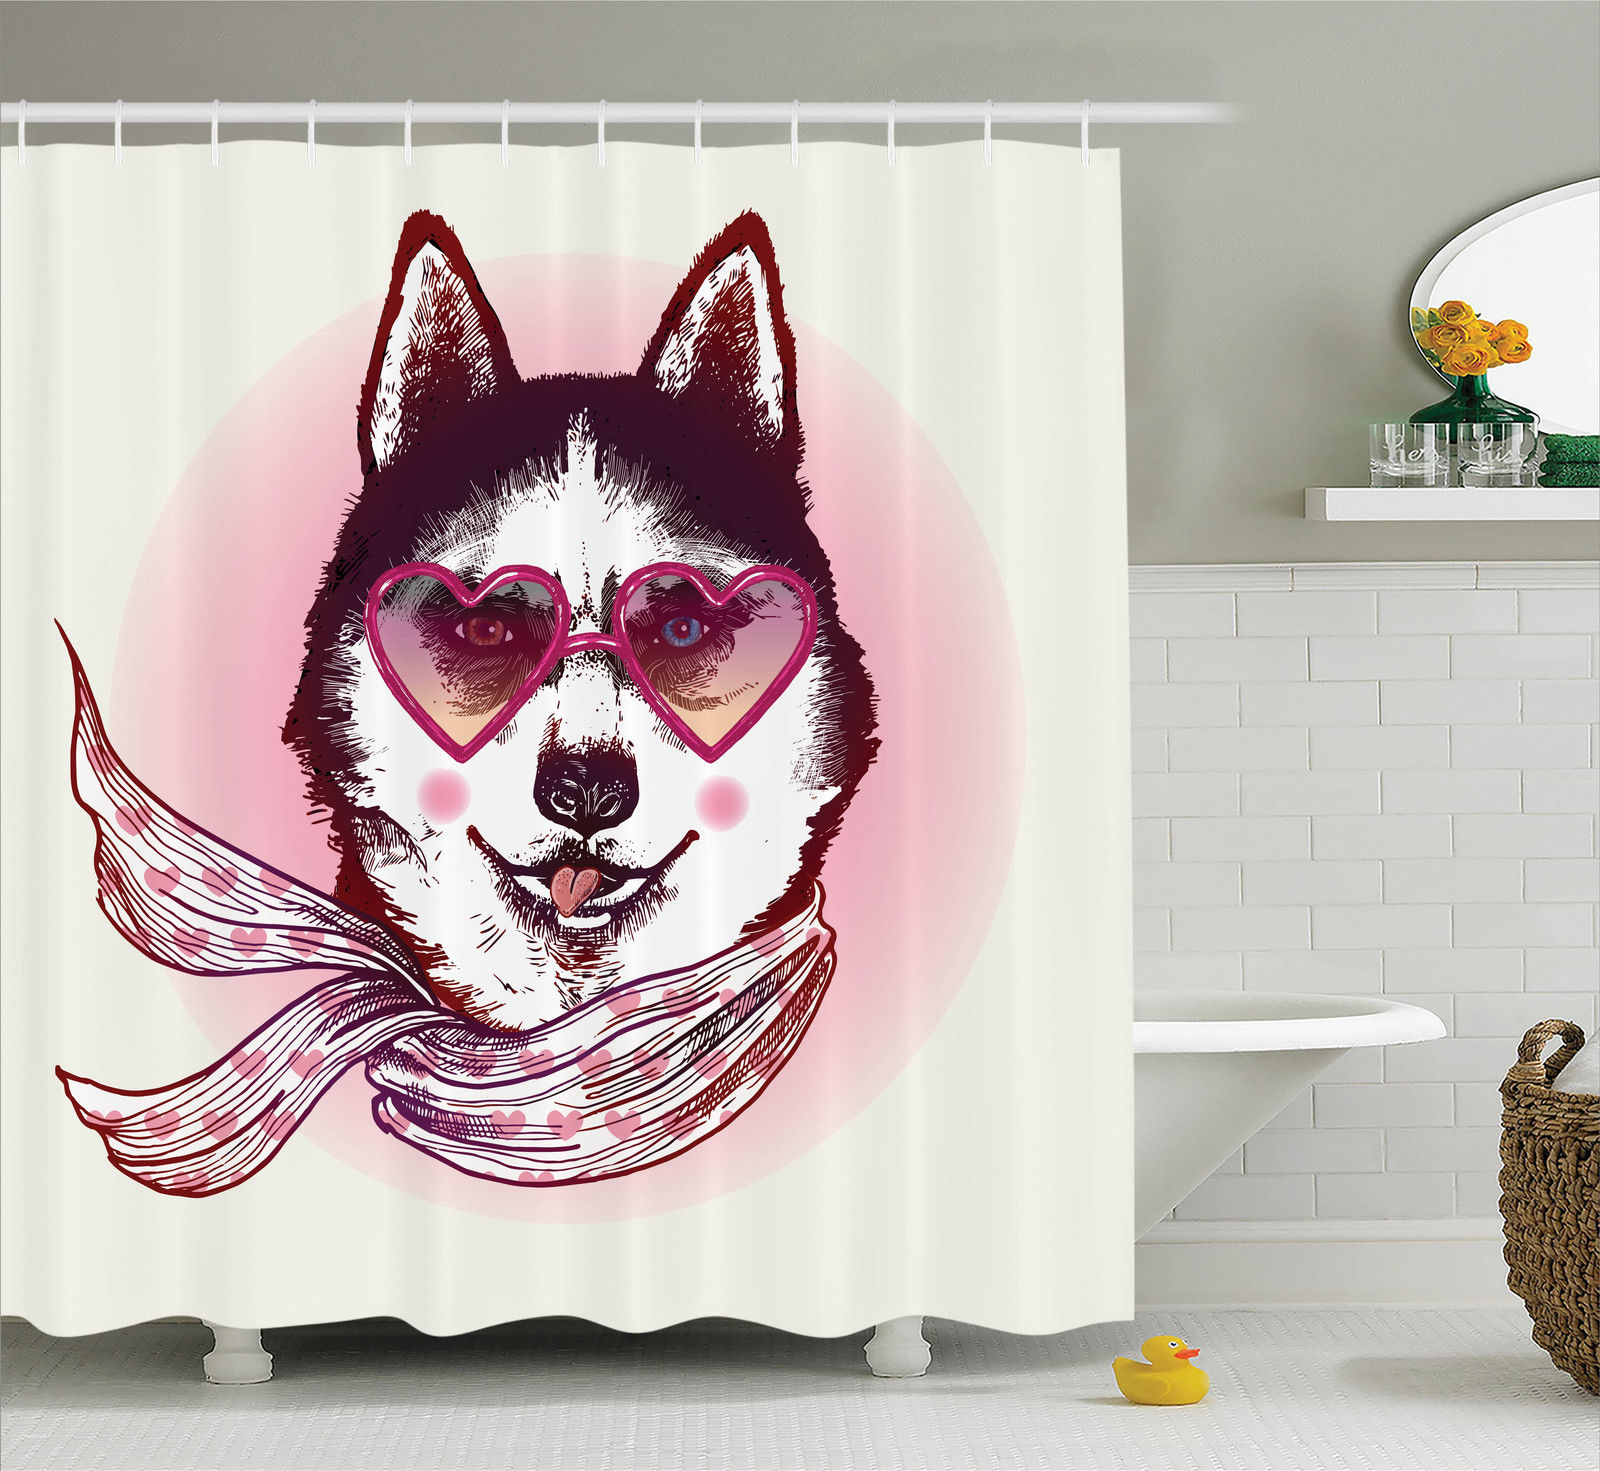 Cartoon Decor  Hipster Husky Dog With Heart Shaped Sunglasses And Scarf Fashion Animal Art Print, Bathroom Accessories, 69W X 84L Inches Extra Long, By Ambesonne